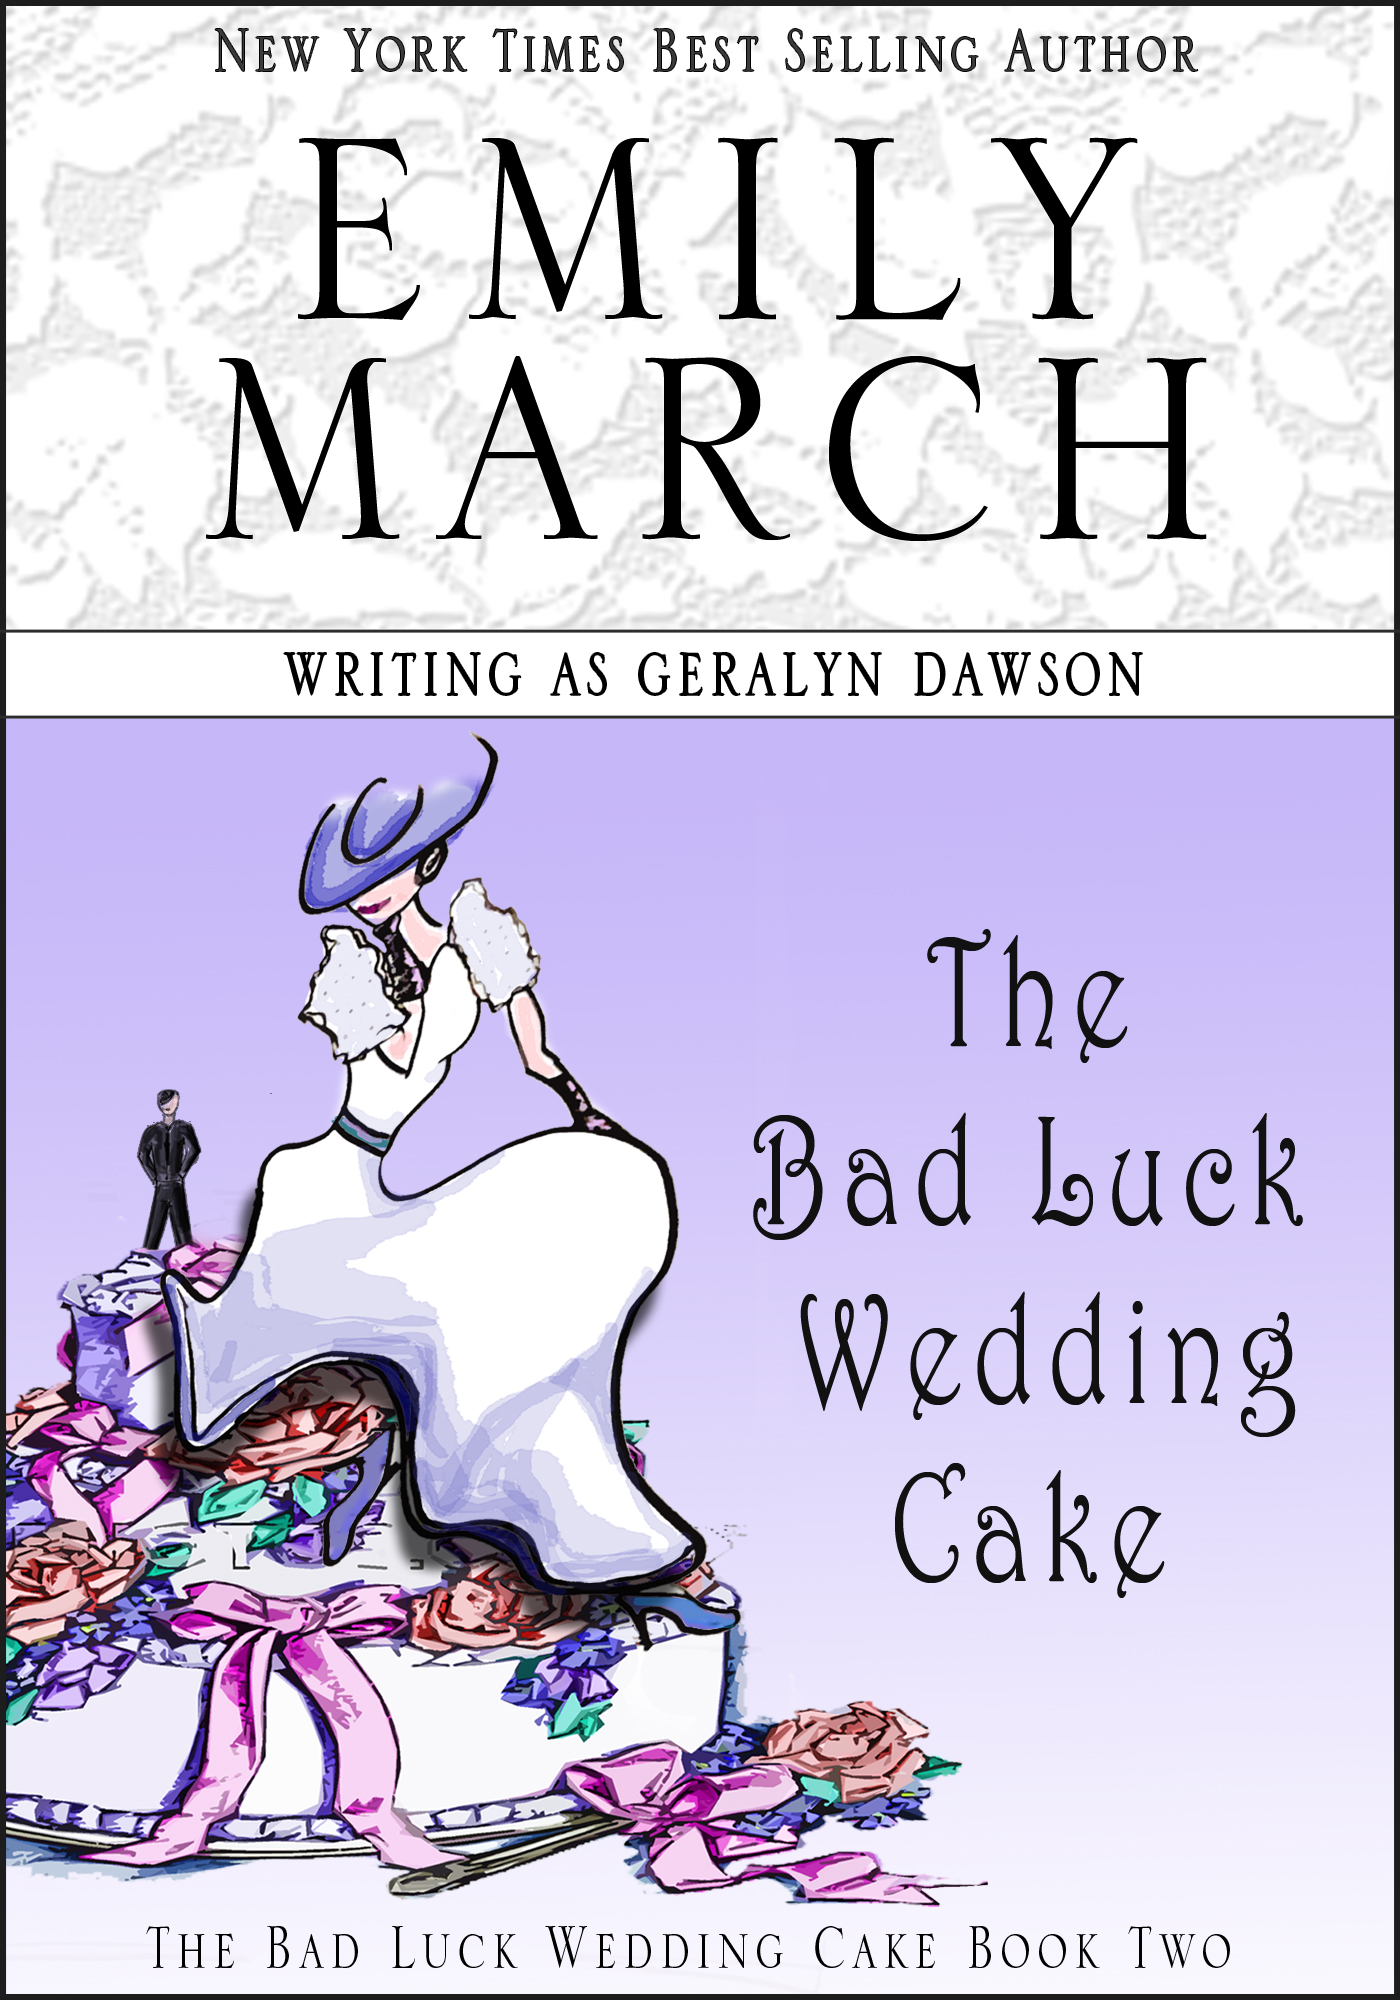 The Bad Luck Wedding Cake